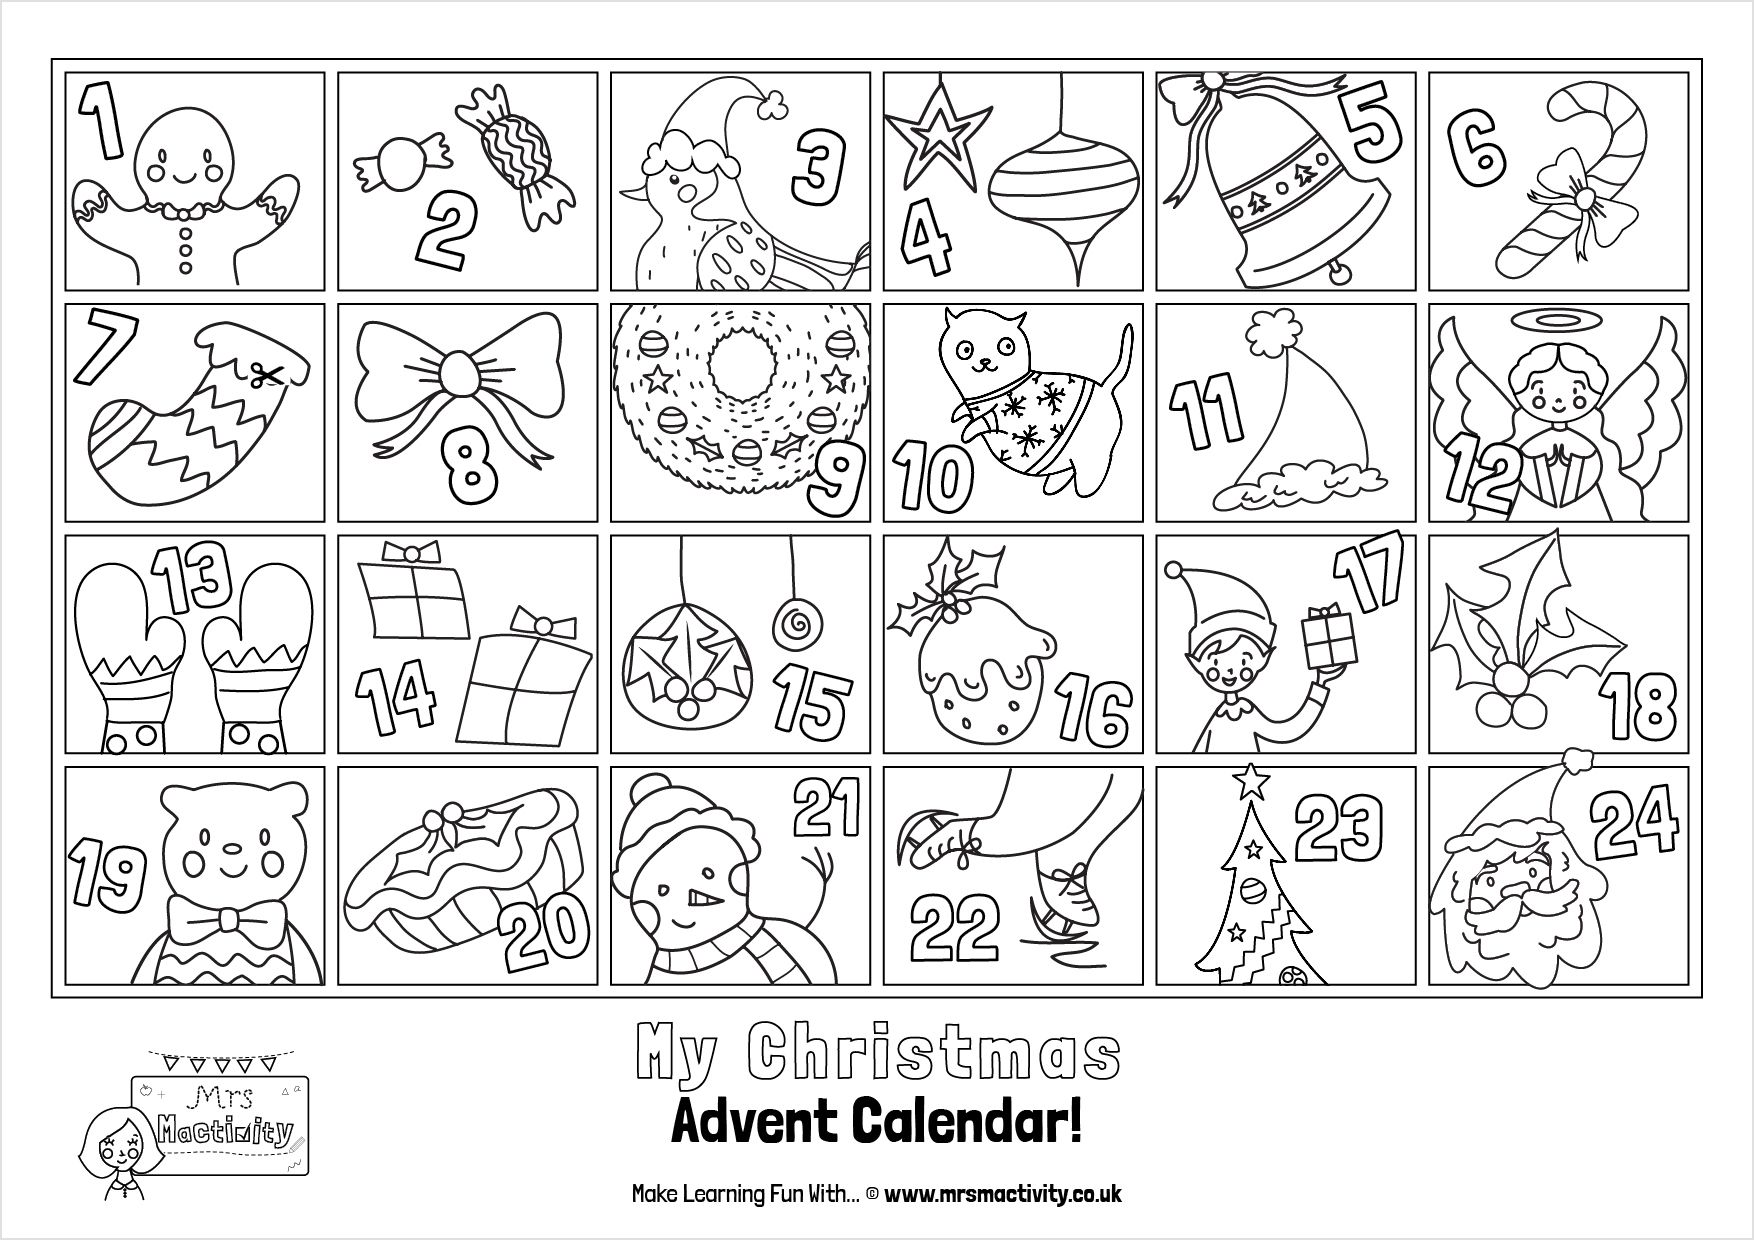 This Advent Calendar Colouring Page is perfect for doing one a day